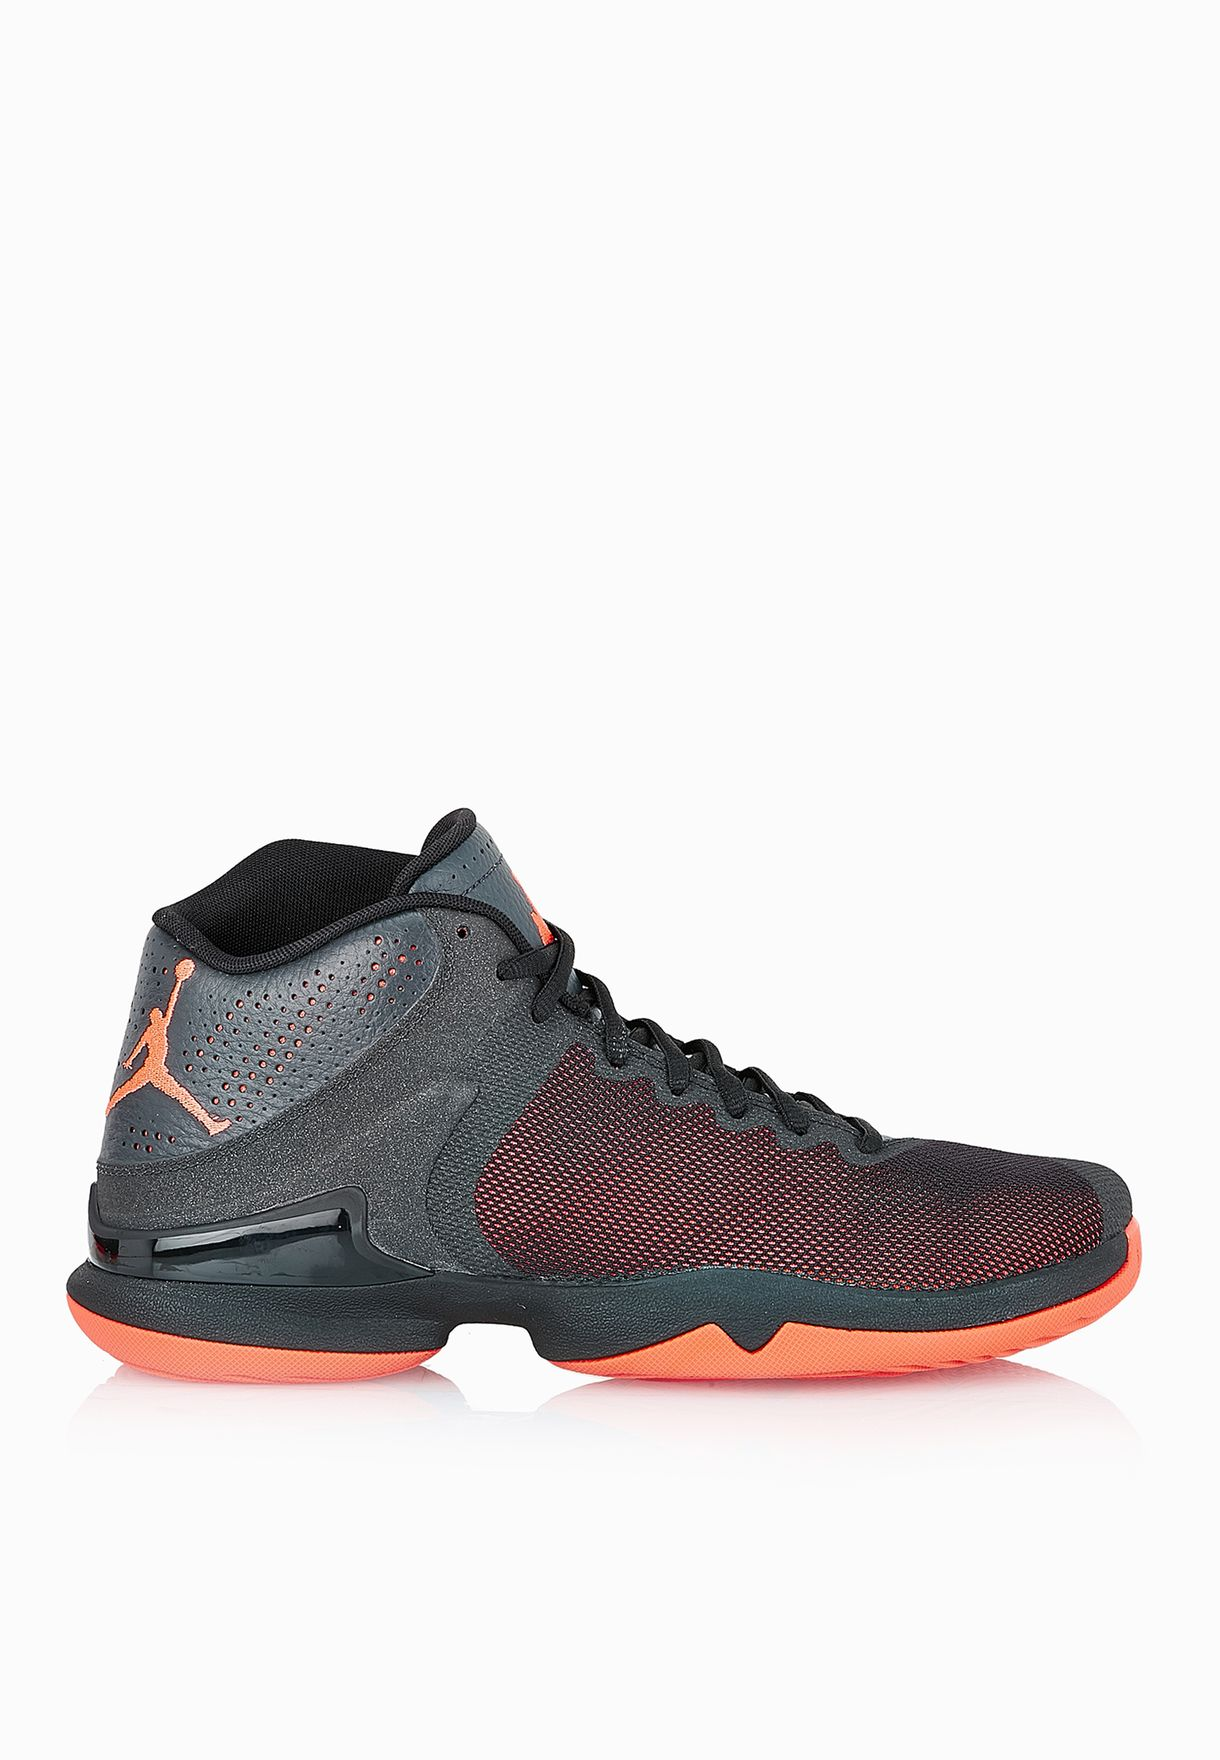 2a5b343b52f2 Shop Nike multicolor Jordan Super.Fly 4 Po 819163-012 for Men in UAE ...